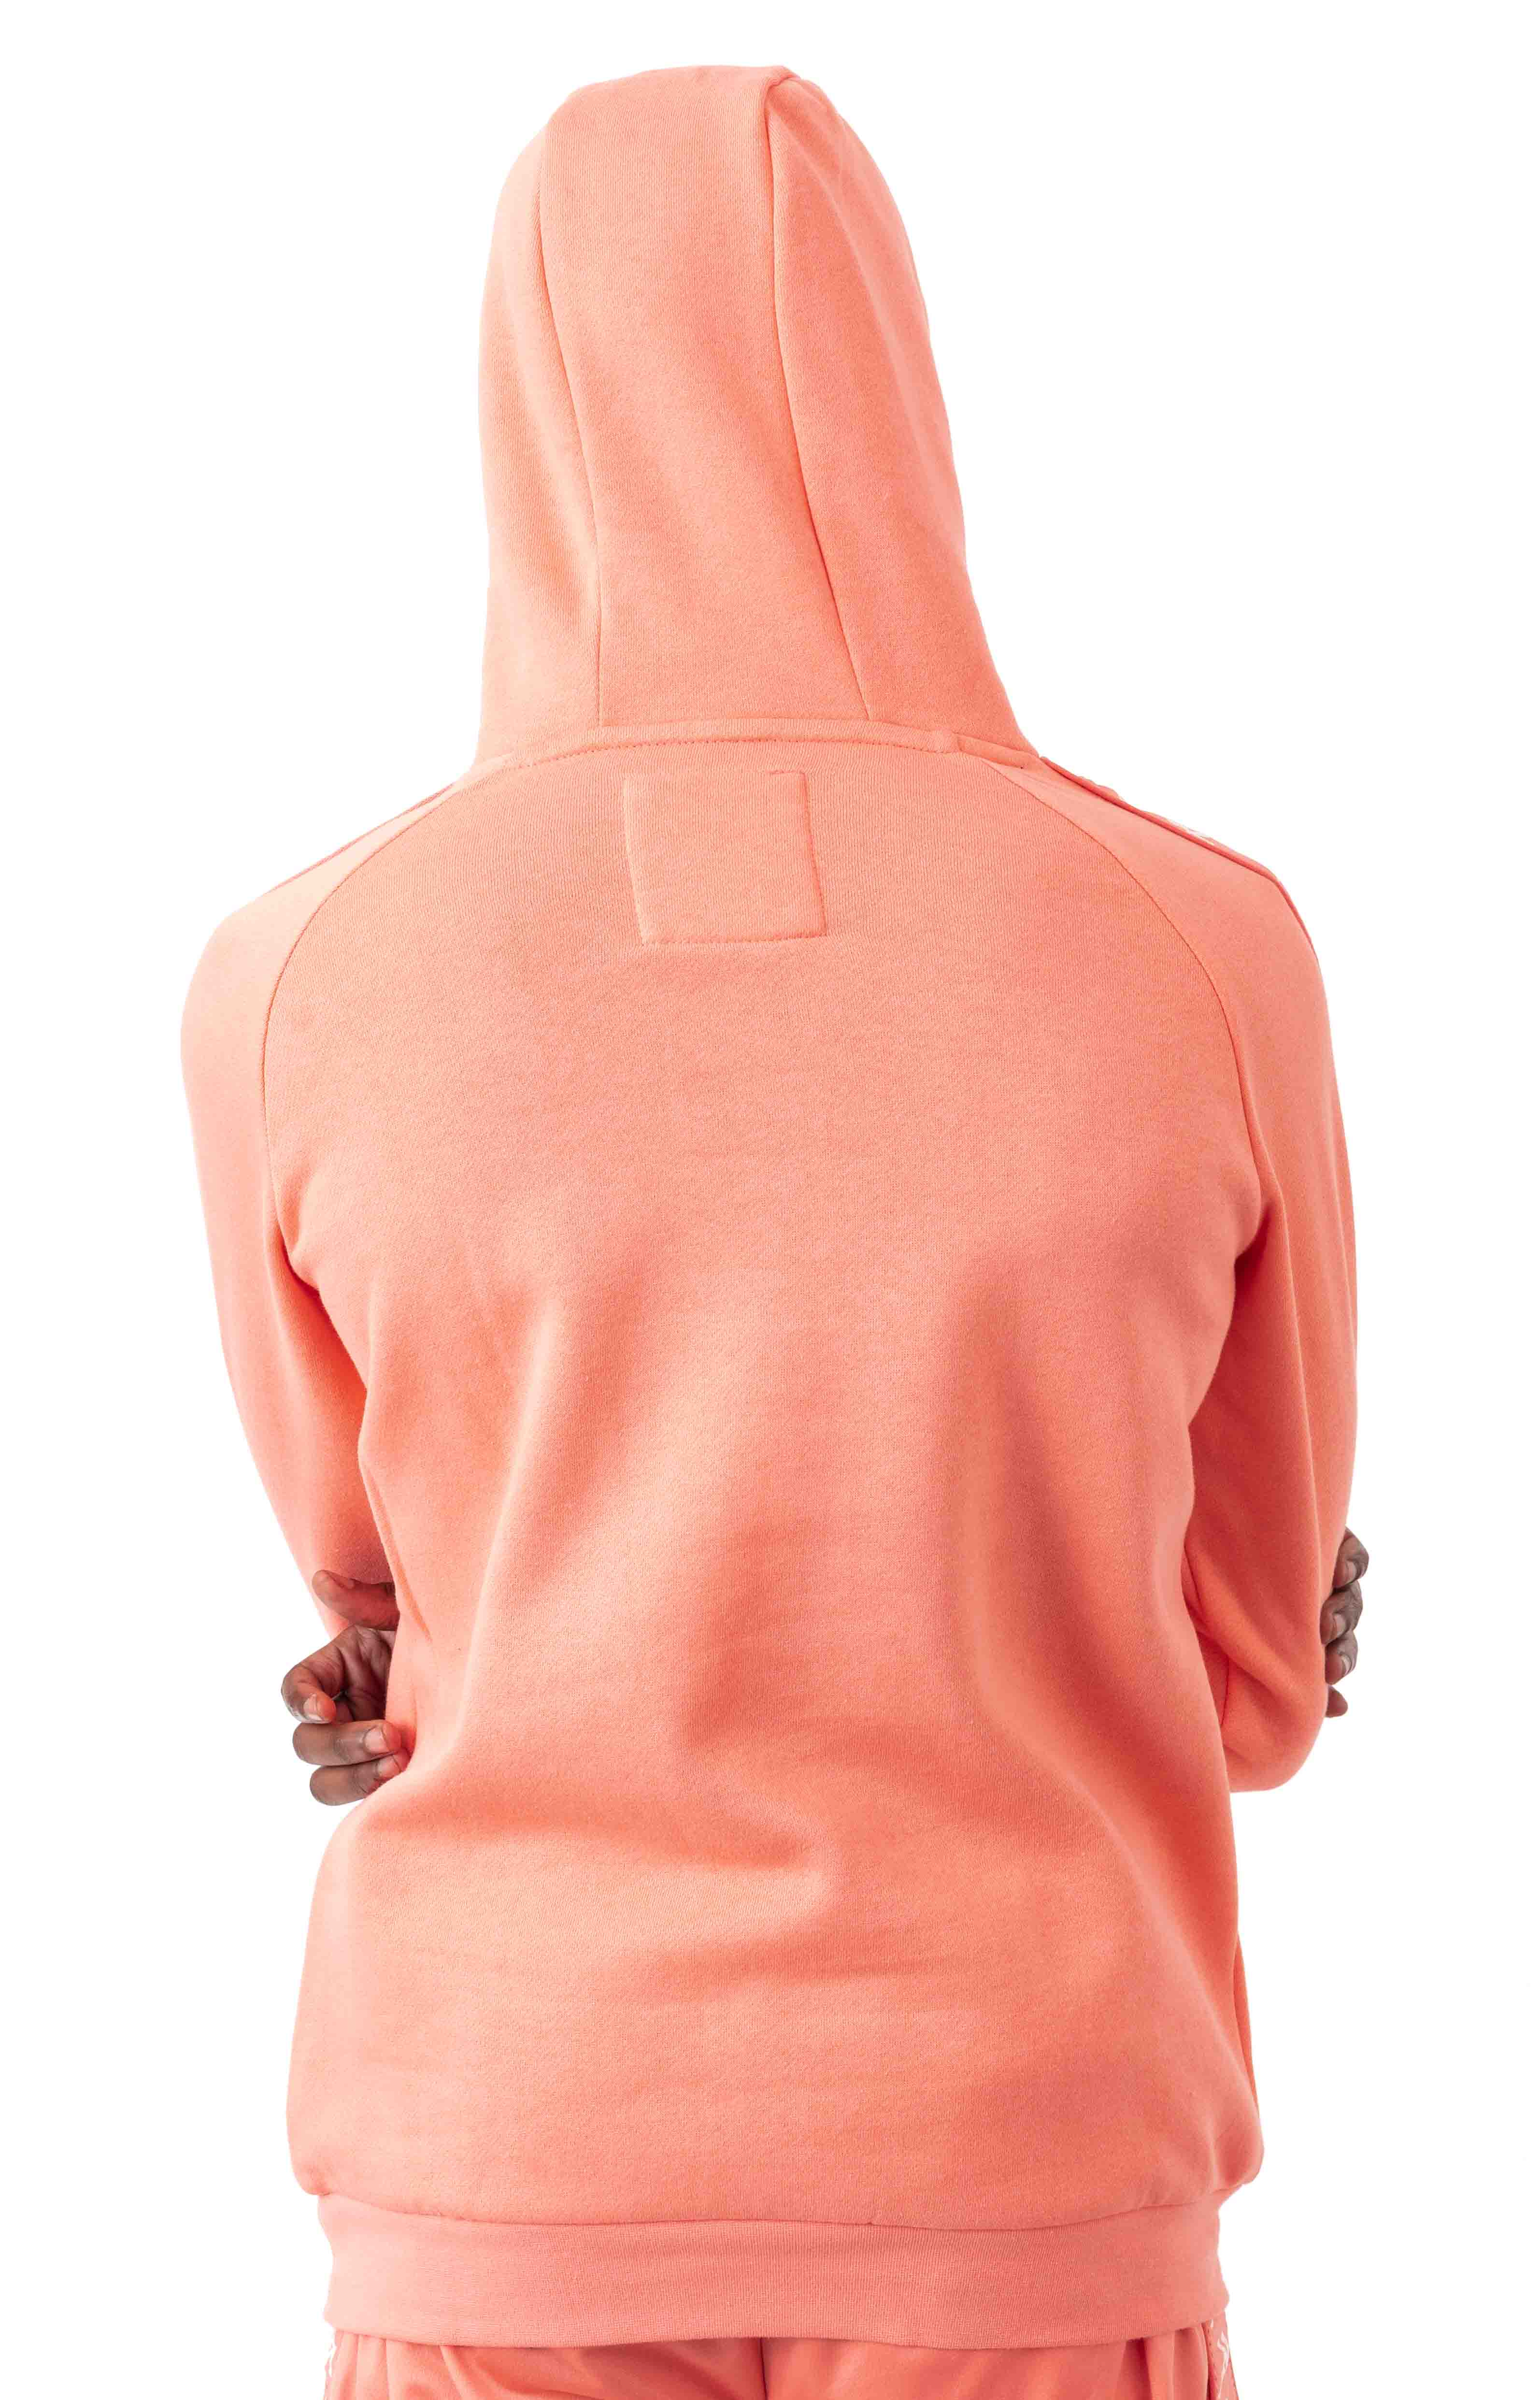 Authentic Hurtado Pullover Hoodie - Pink/White 3